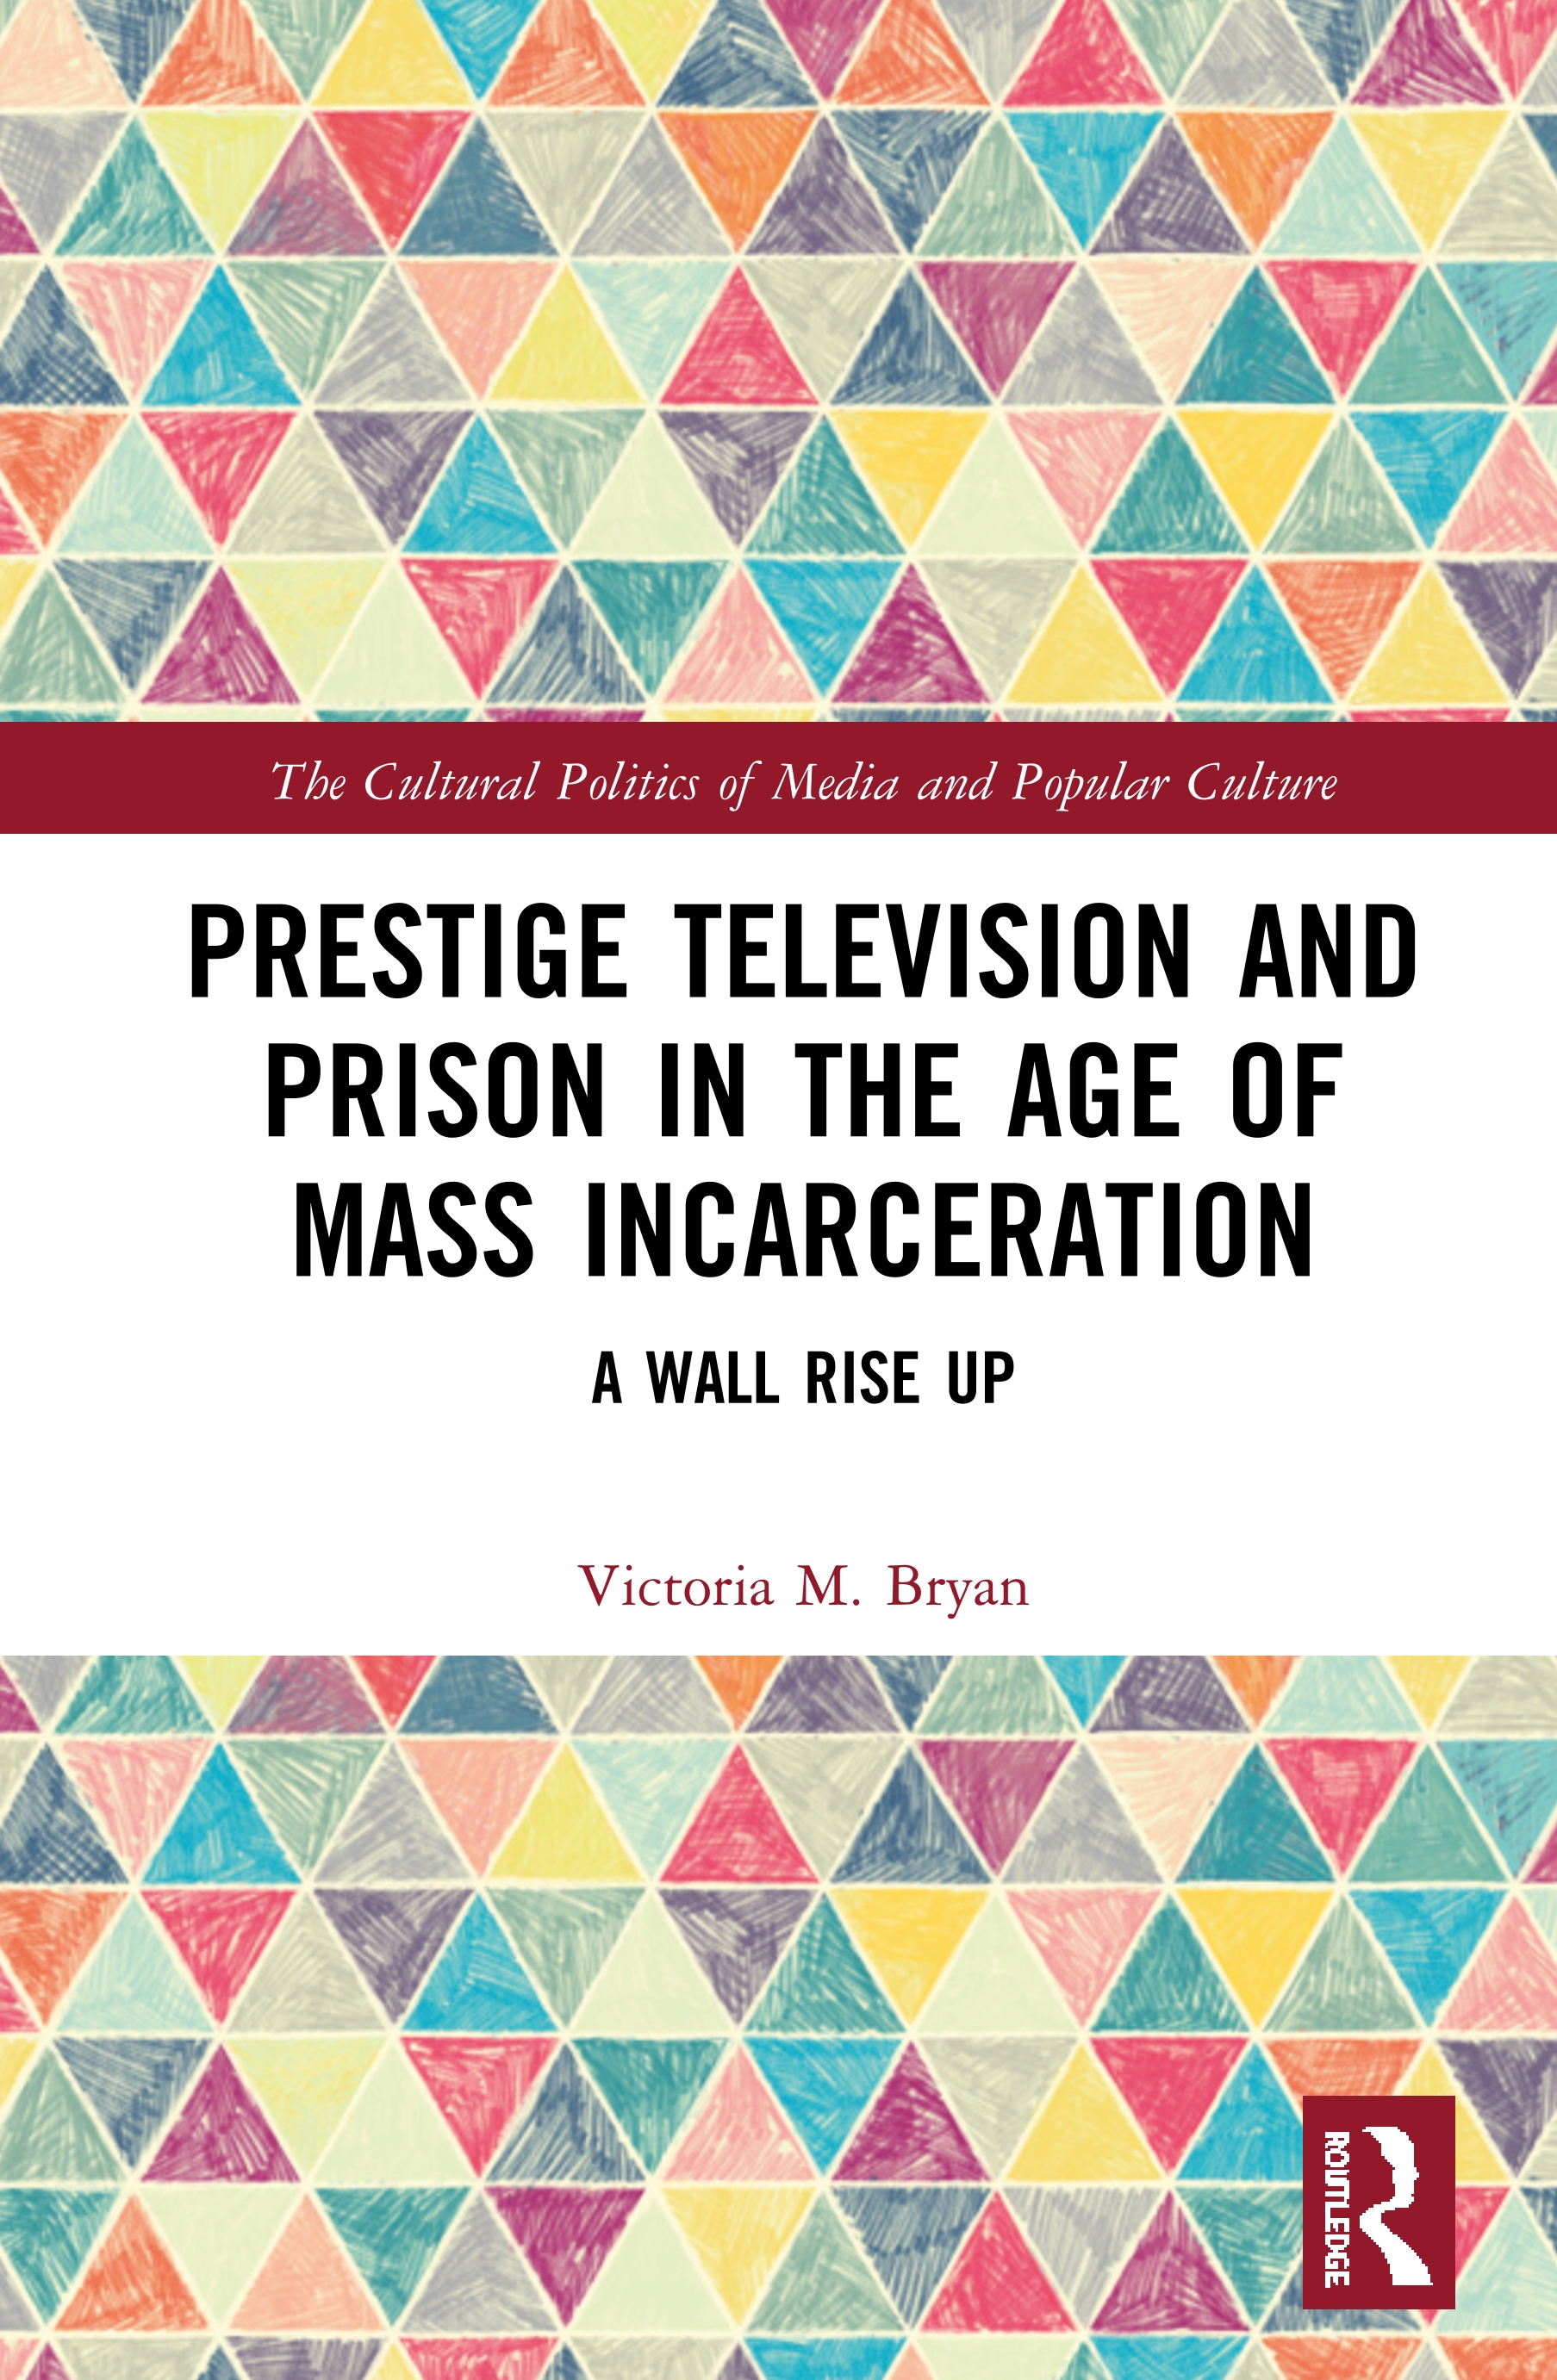 Prestige Television and Prison in the Age of Mass Incarceration: A Wall Rise Up book cover